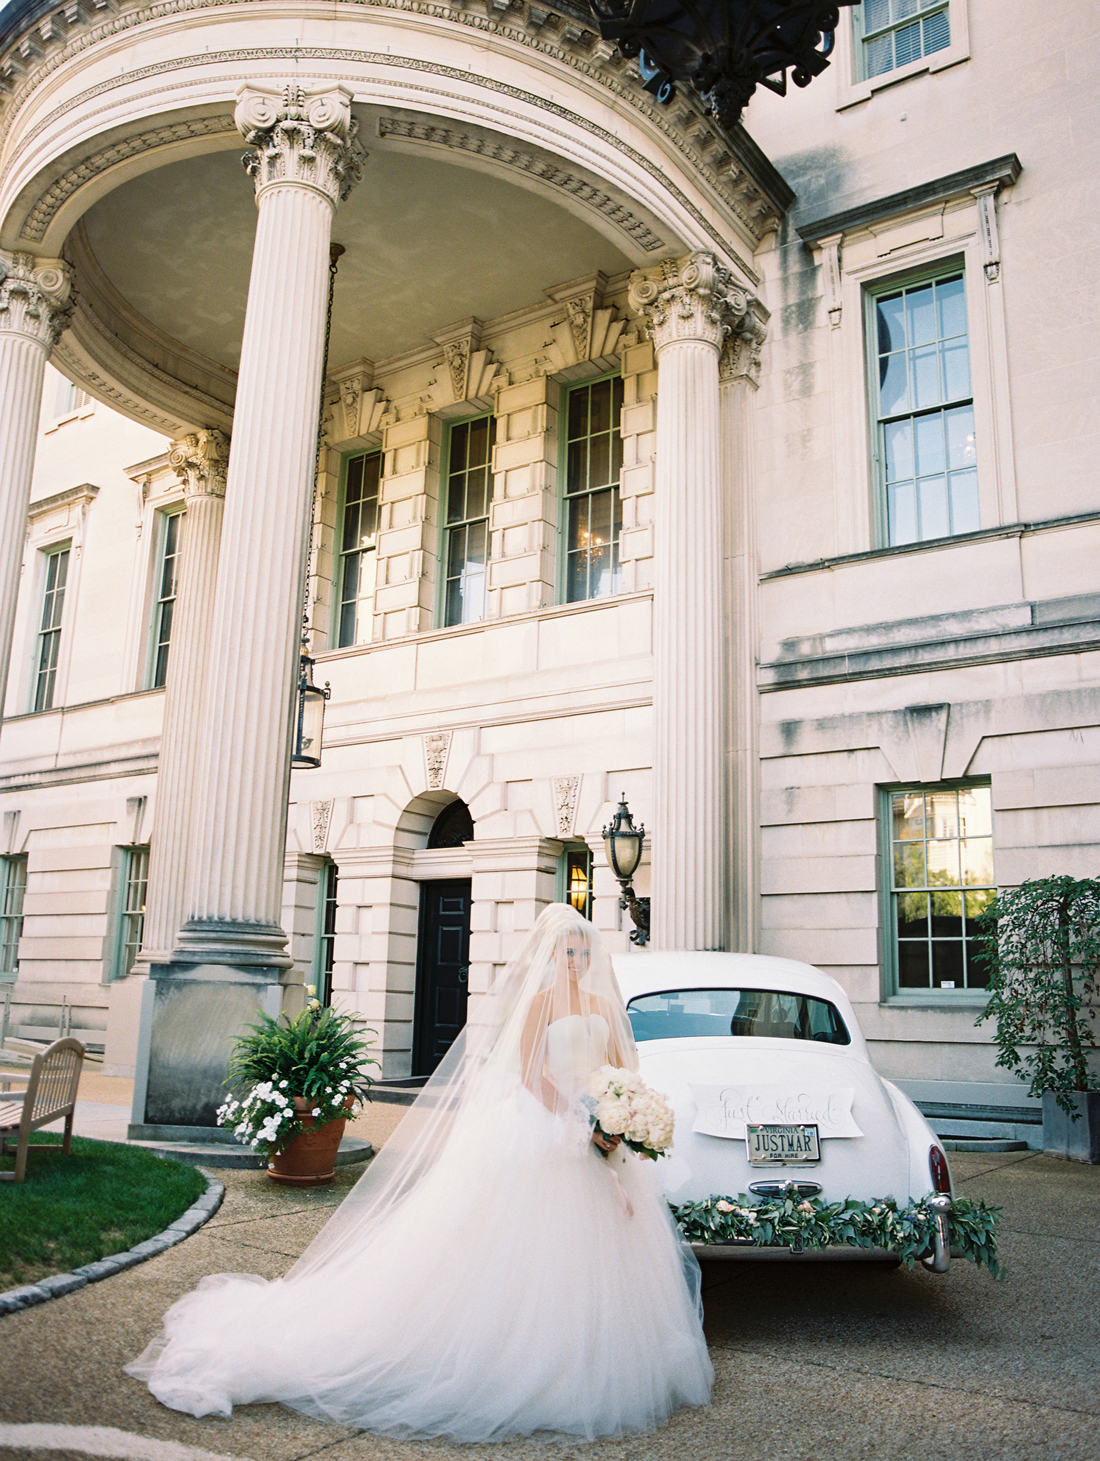 bride in wedding dress outside venue next to vintage white car